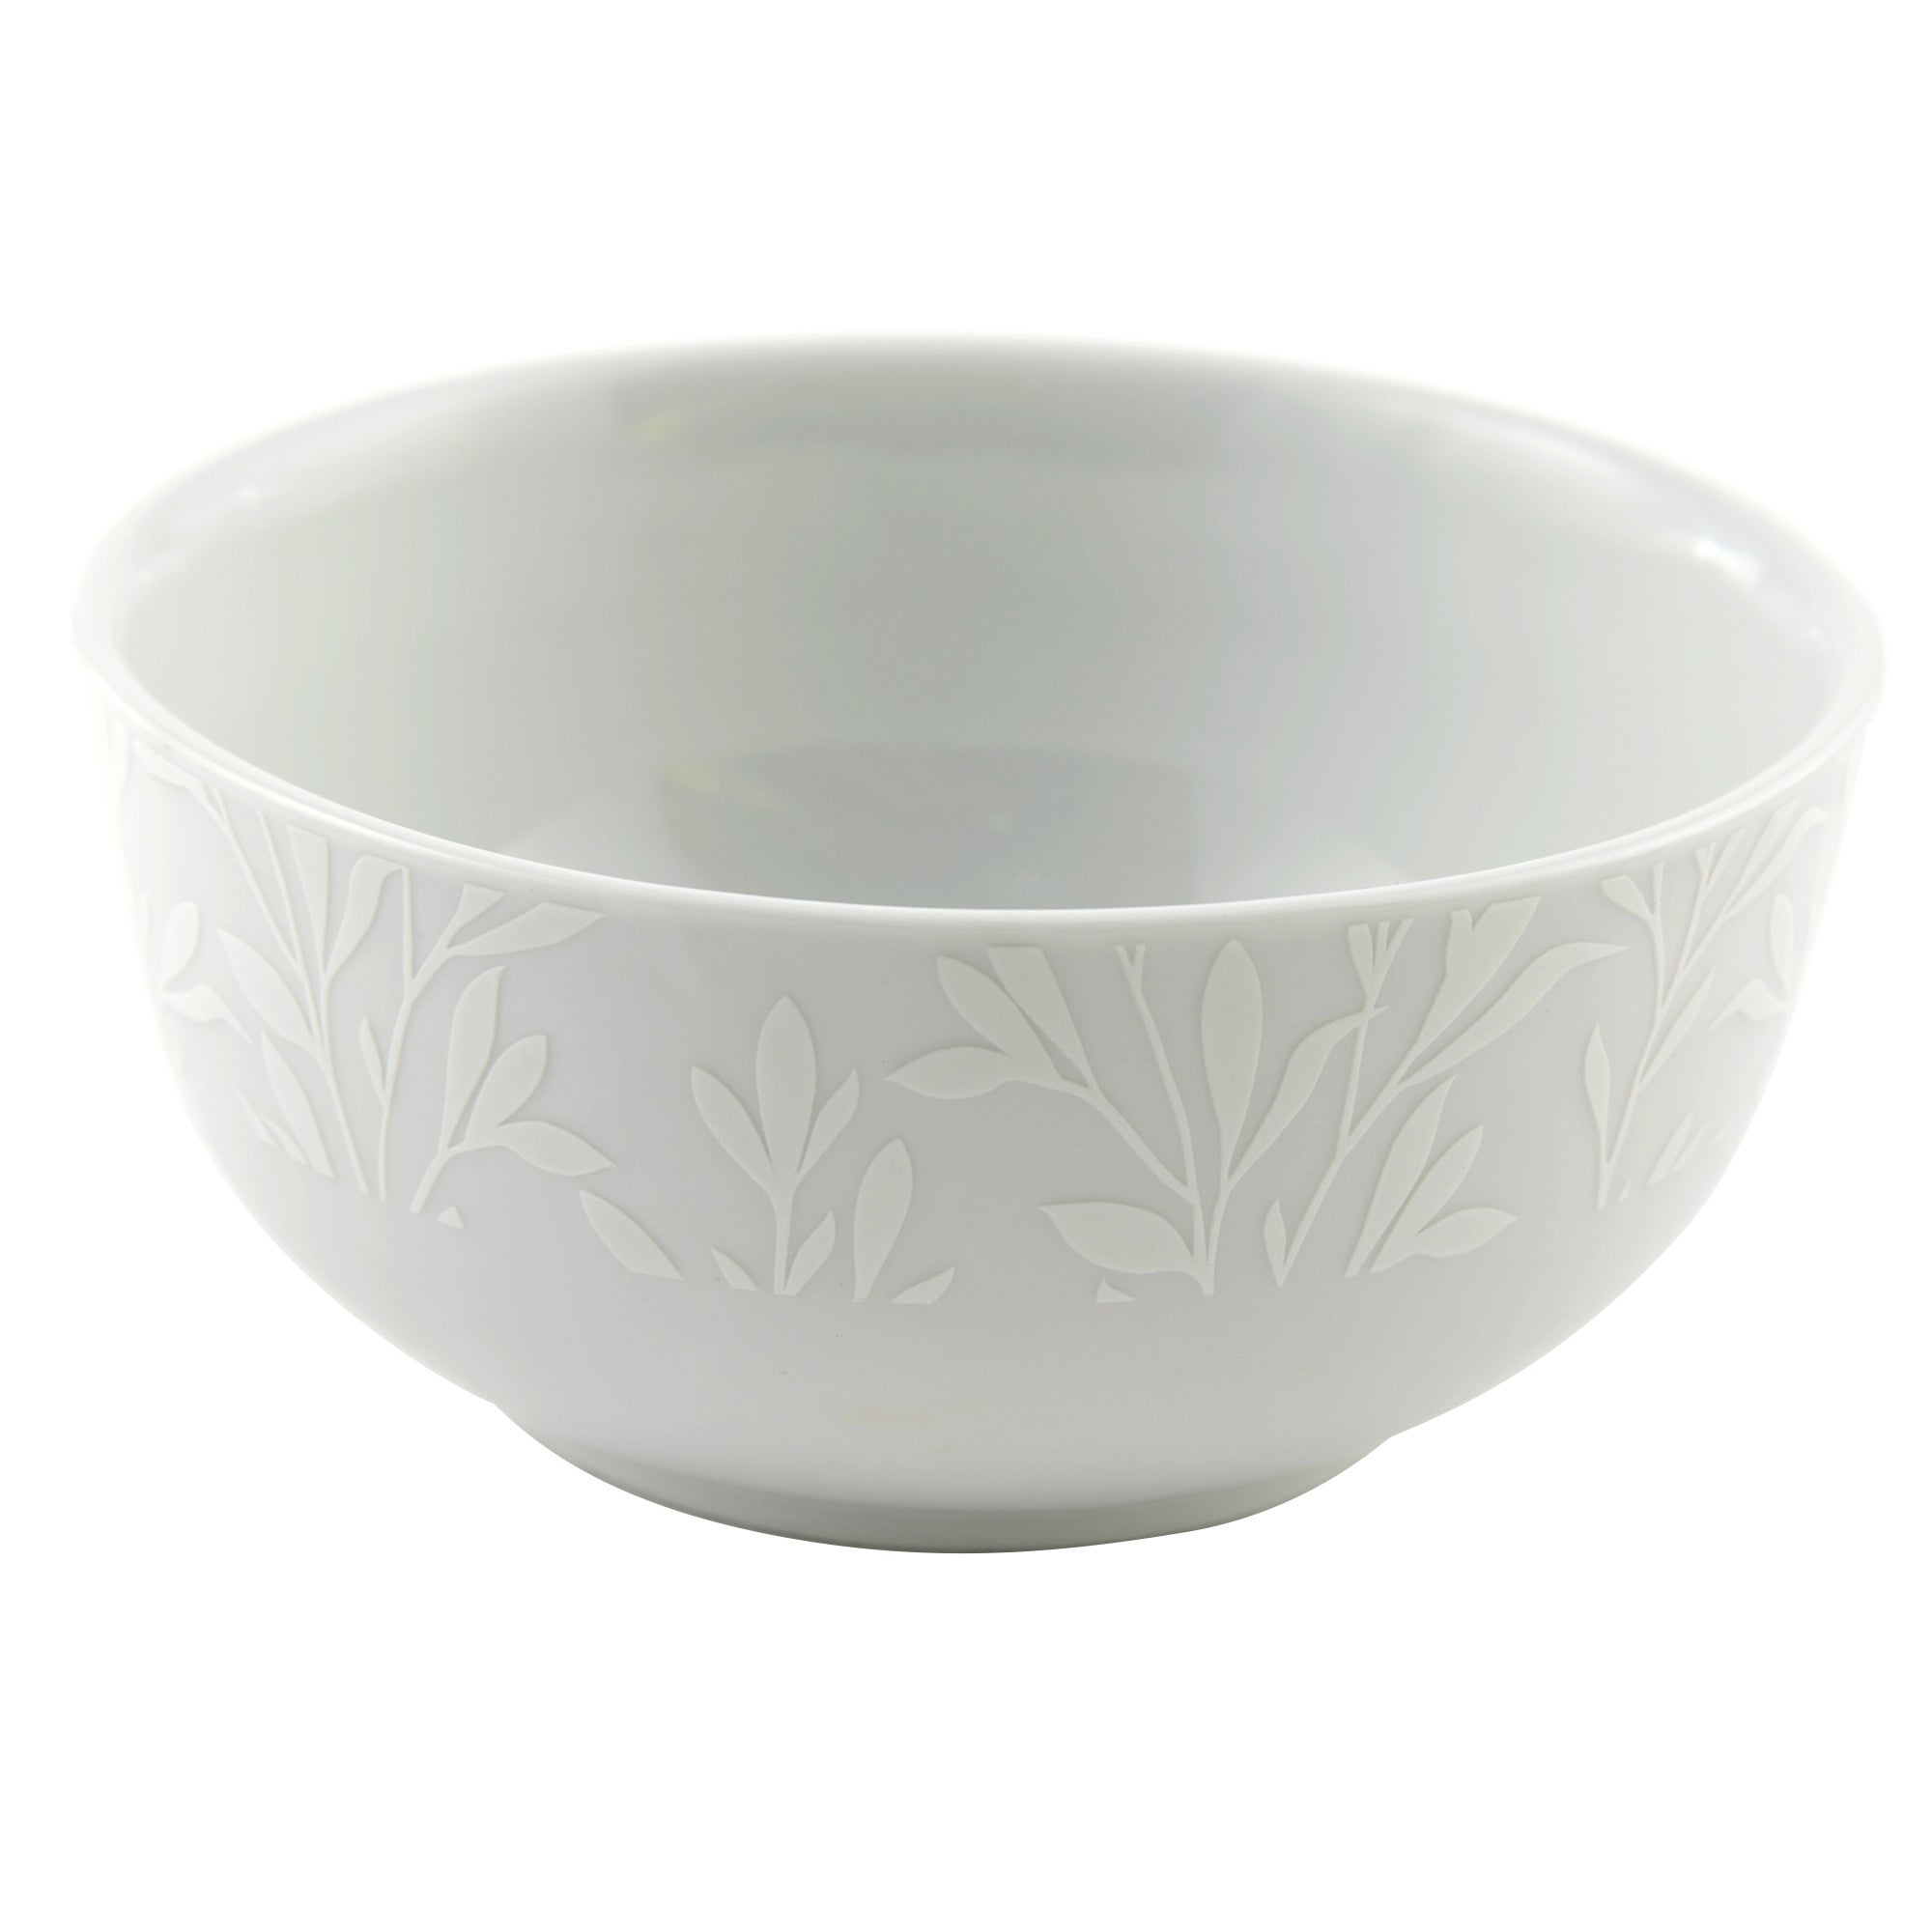 White on White Collection Bowl